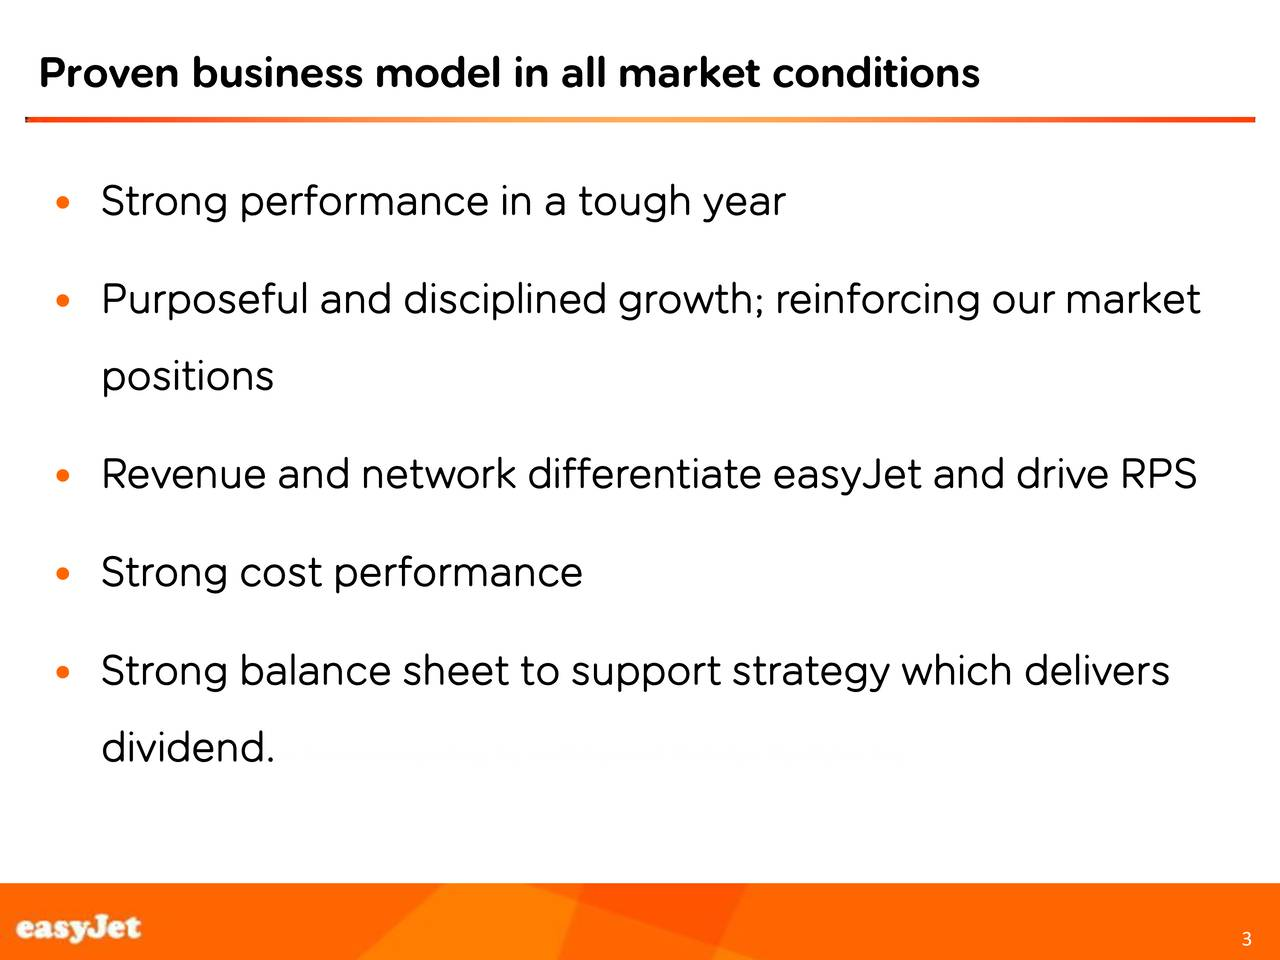 Strong performance in a tough year Purposeful and disciplined growth; reinforcing our market positions Revenue and network differentiate easyJet and drive RPS Strong cost performance Strong balance sheet to support strategy which delivers dividend.Footer box on intersect of lines line h=8.03 9 and v=8.75 with font 10pt Arial not bold 3